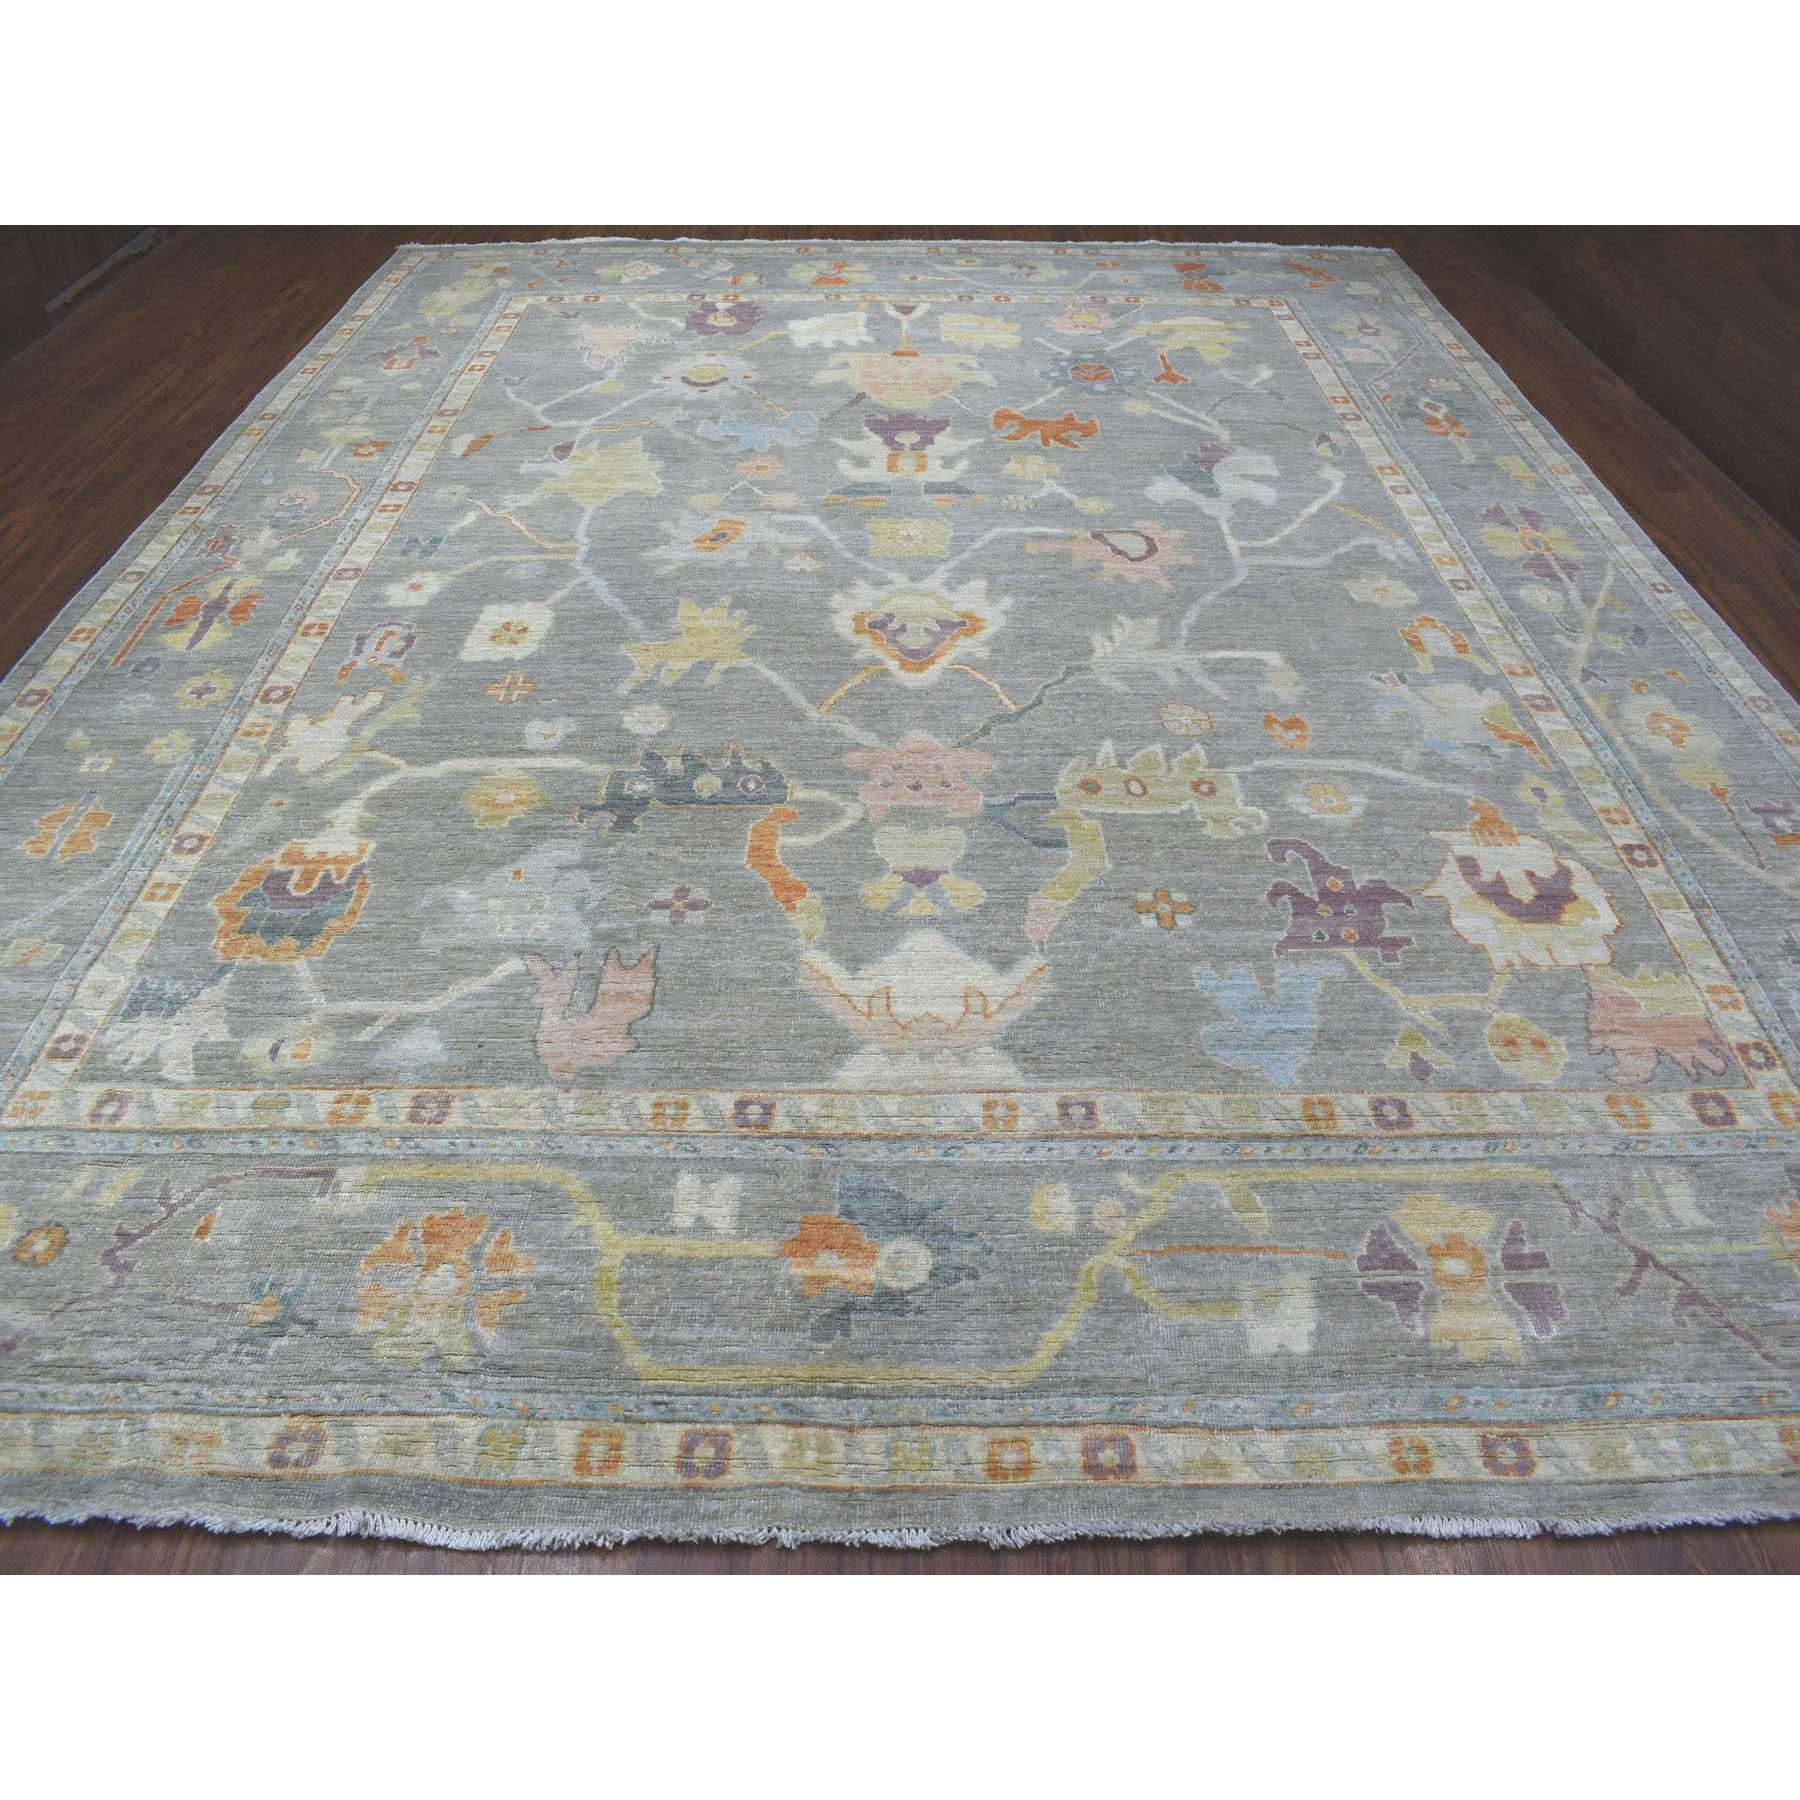 "12'x14'7"" Oversize Gray Angora Oushak With Sun-Dried Wool Hand Woven Oriental Rug"